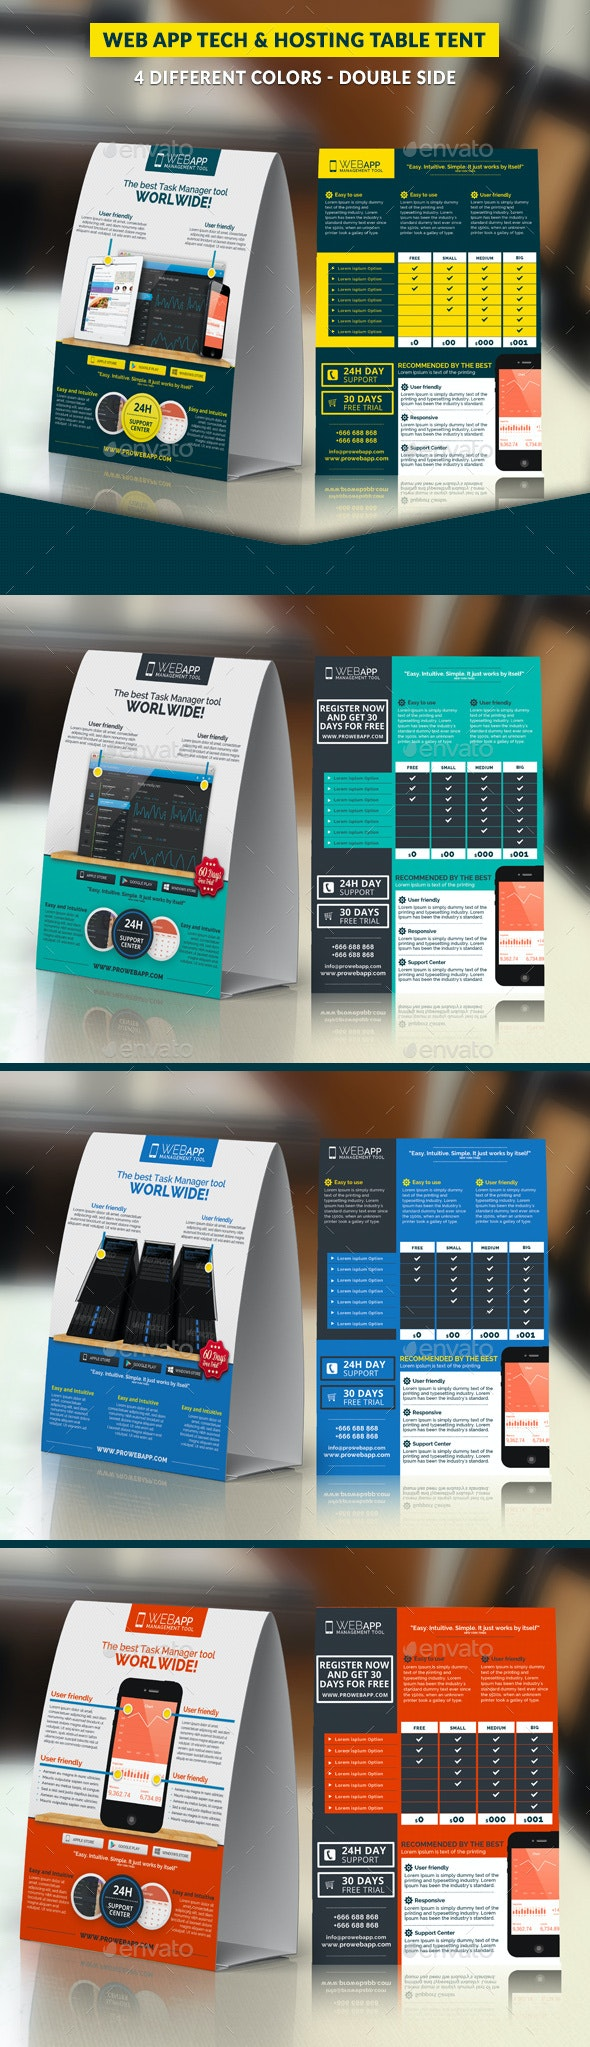 Web App Tech and Hosting Table Tent Template - Print Templates